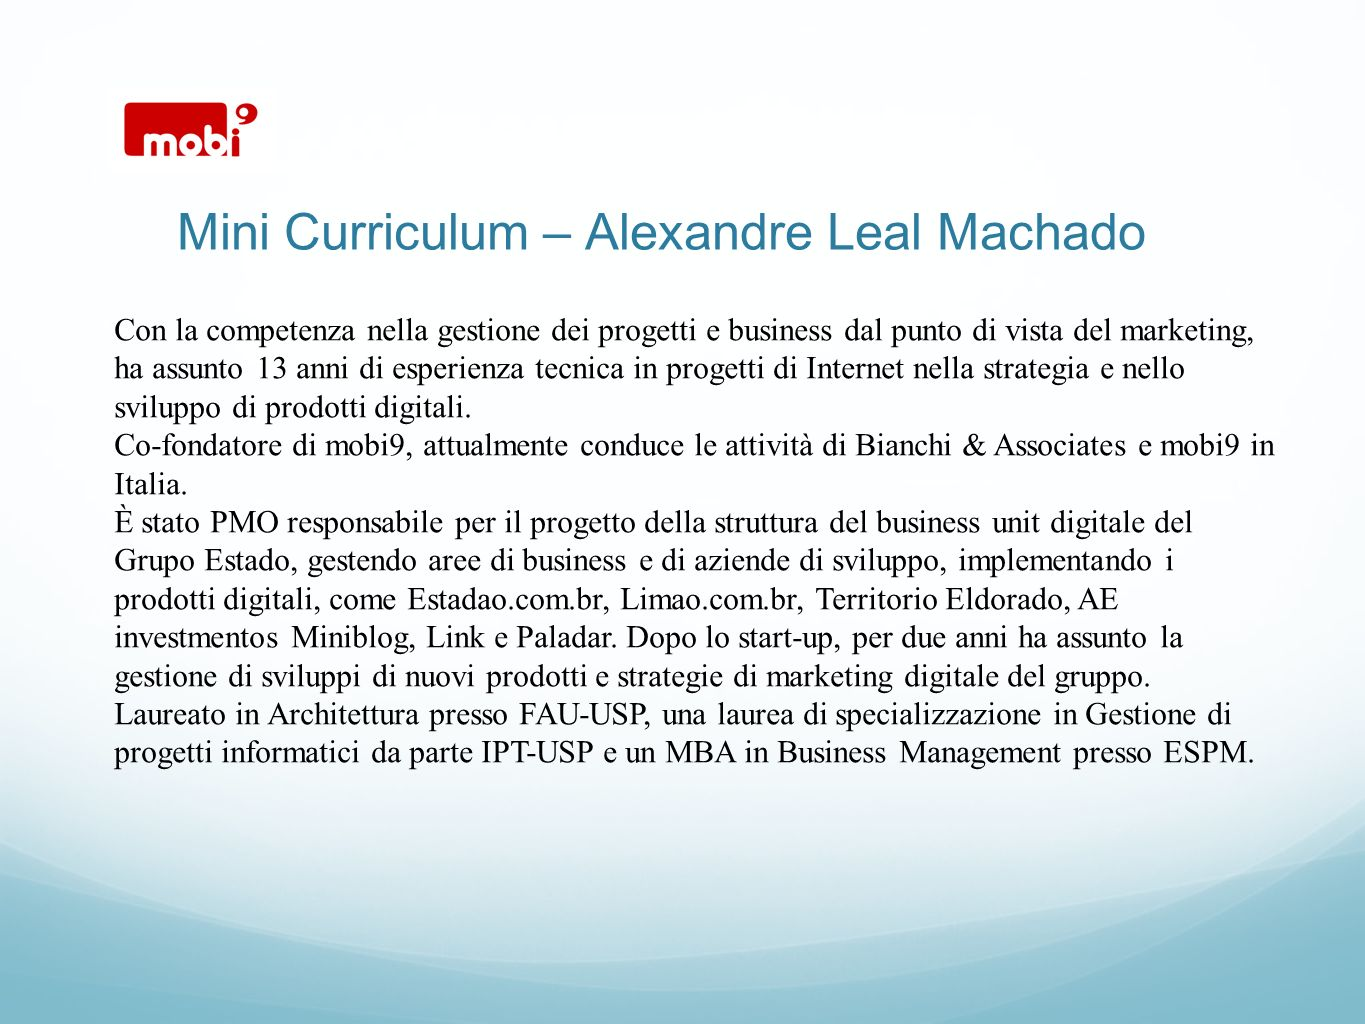 Mini Curriculum – Alexandre Leal Machado